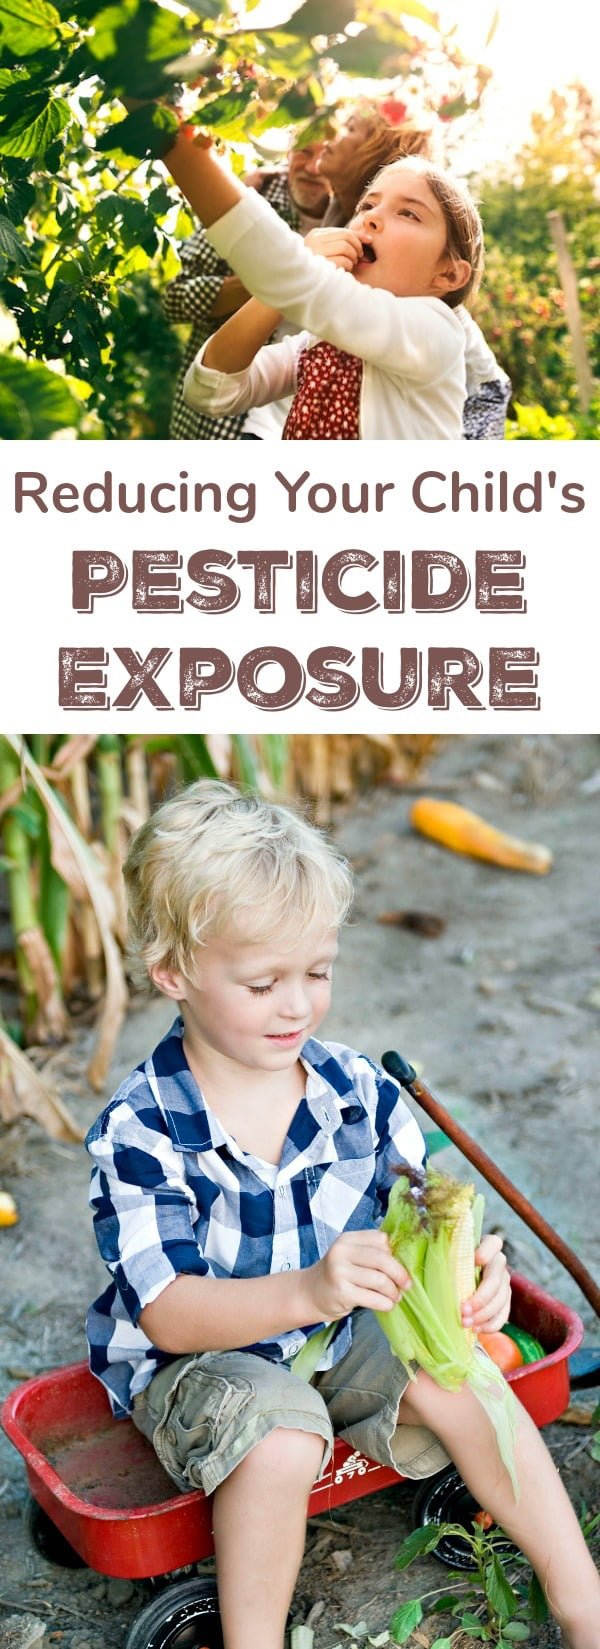 How You Can Protect Your Child From Pesticide Exposure: There are many serious health risks associated with exposure to pesticides in children. Some effects can inhibit learning, including ADHD and decreased IQ. Major risks also include cancer, depression, breathing problems, and a compromised immune system.